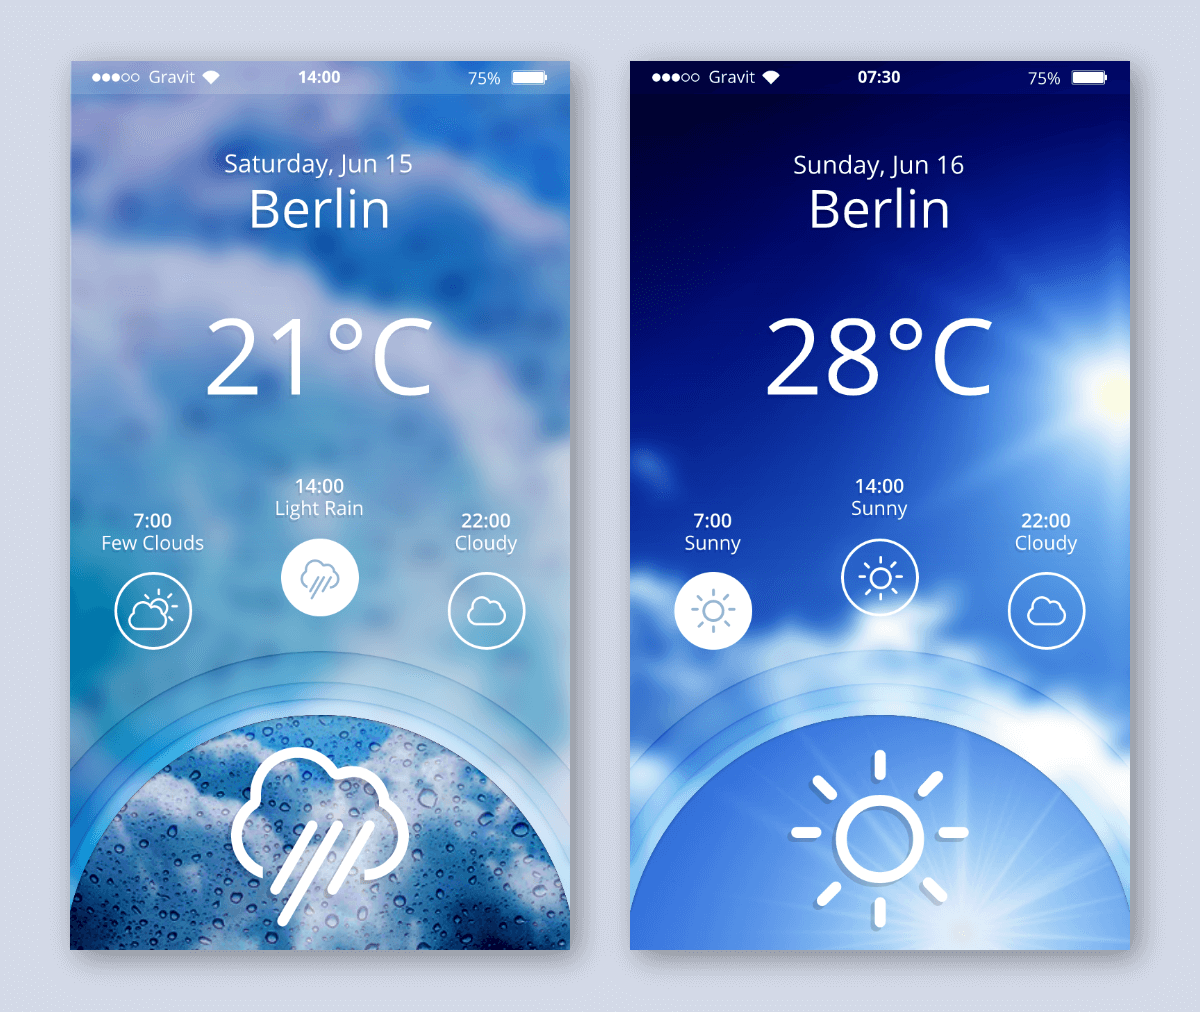 An introduction to gravit designer designing a weather app part figure 1 the weather app completed go to part 1 biocorpaavc Image collections